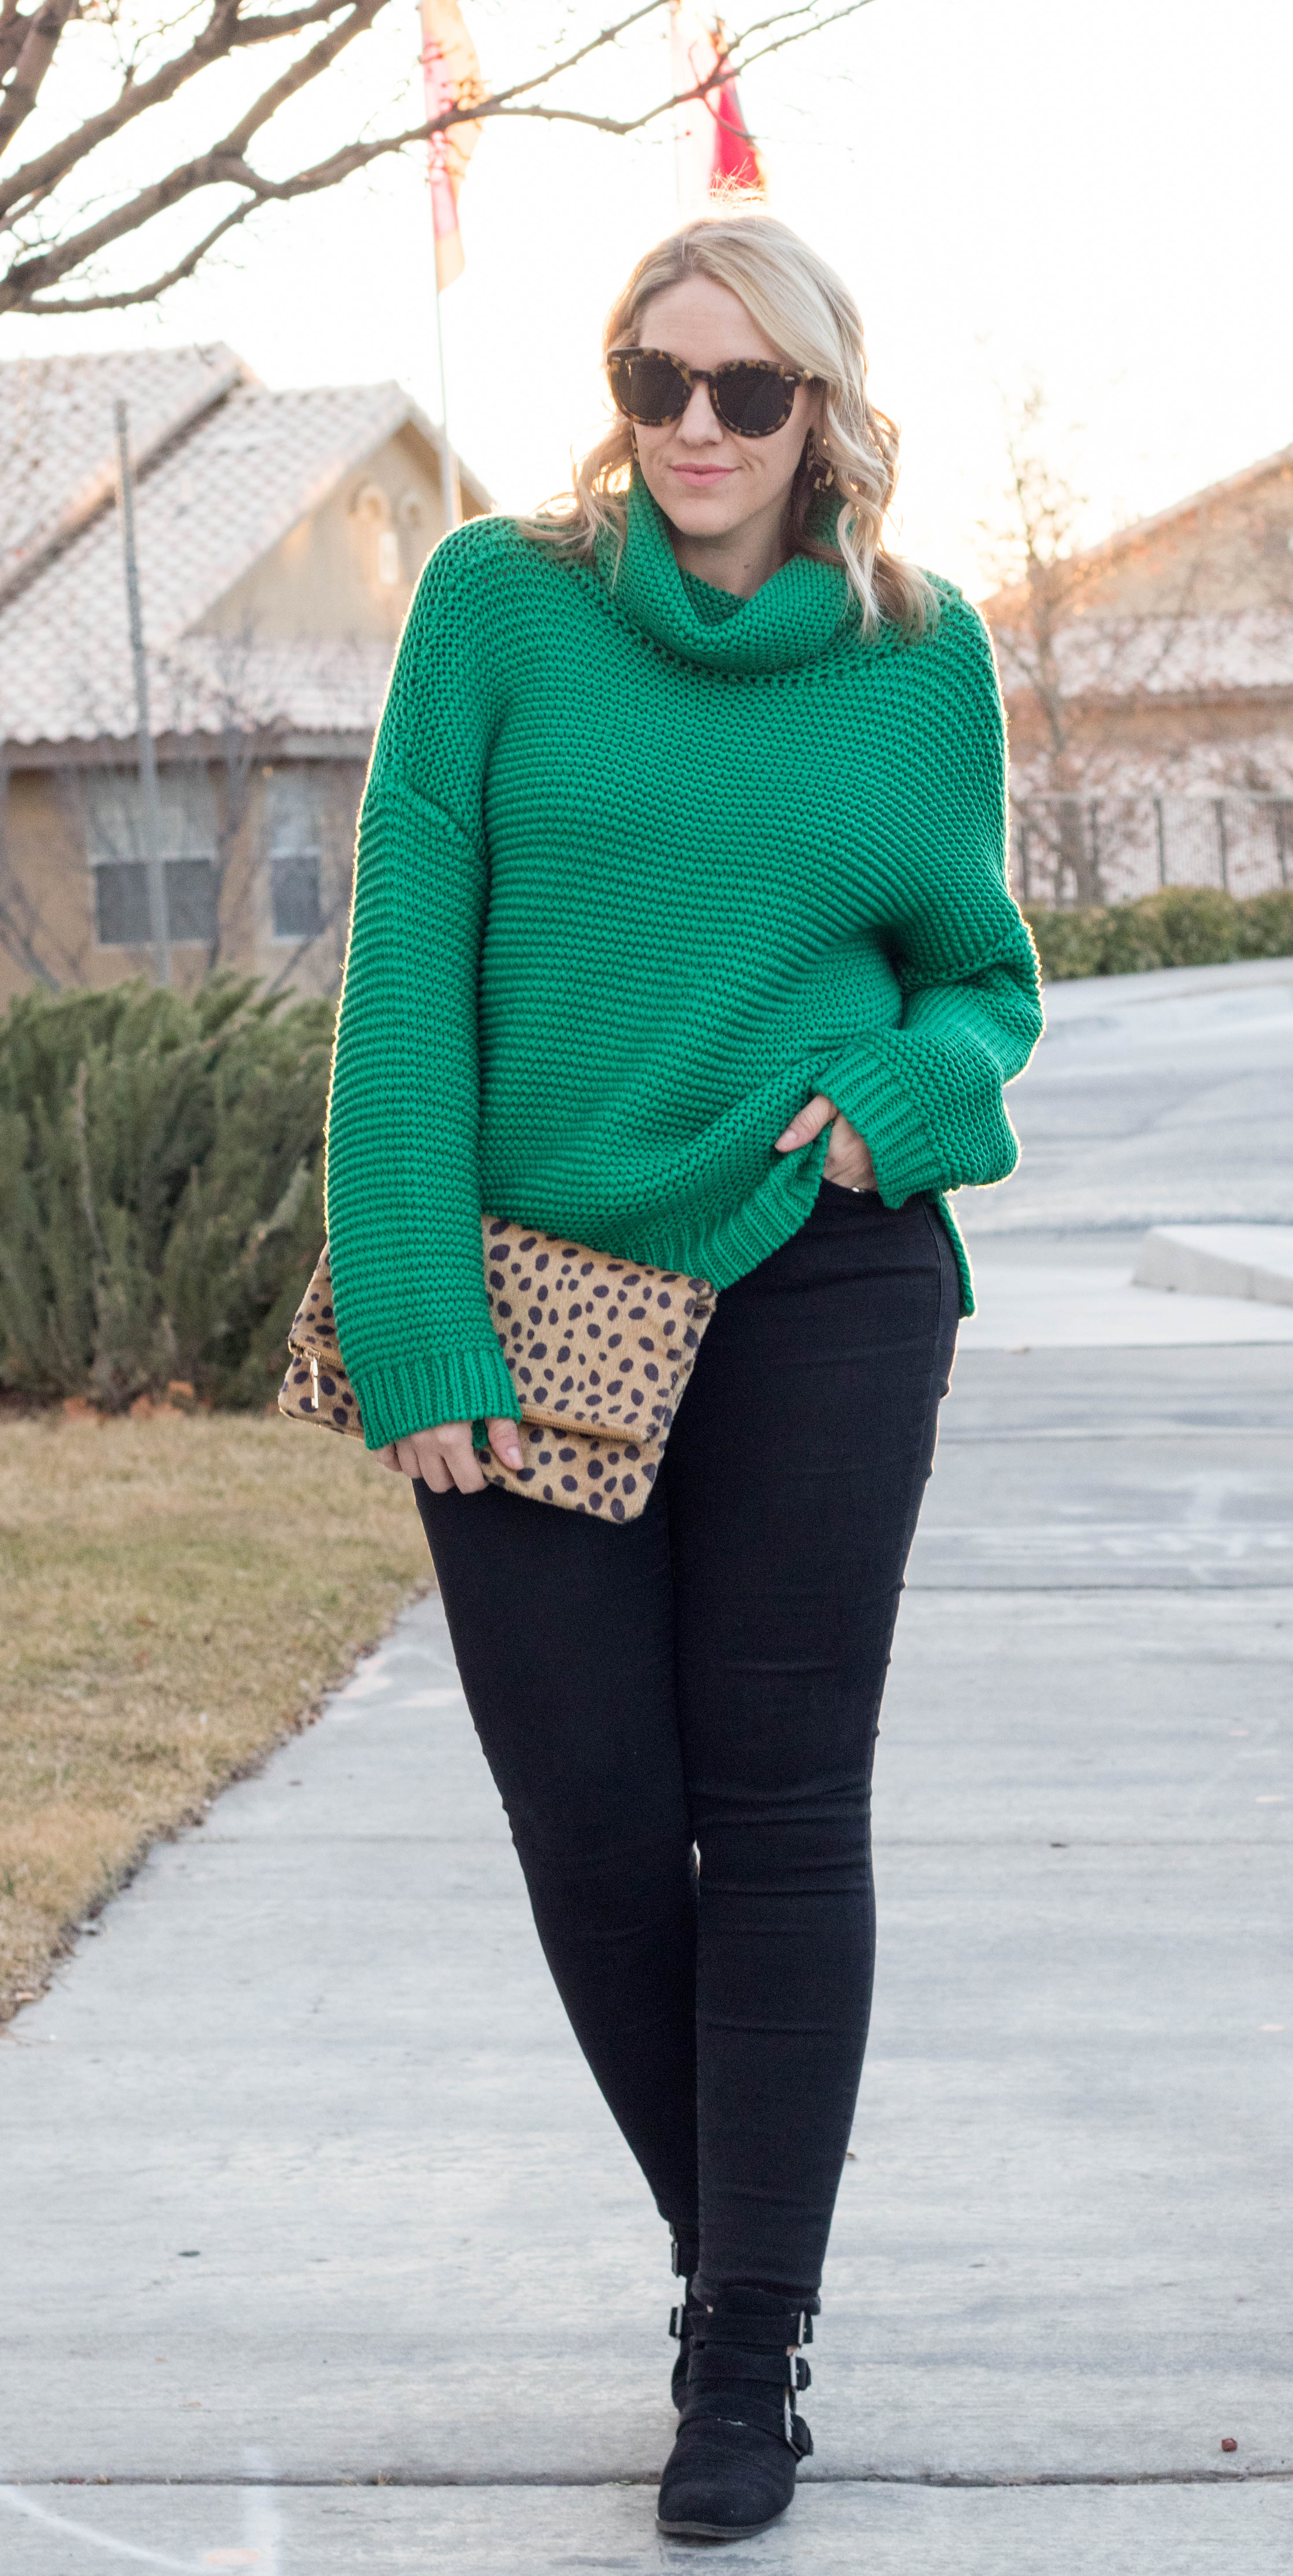 VICI henry oversized knit sweater #vicidolls #winterfashion #theweeklystyleedit